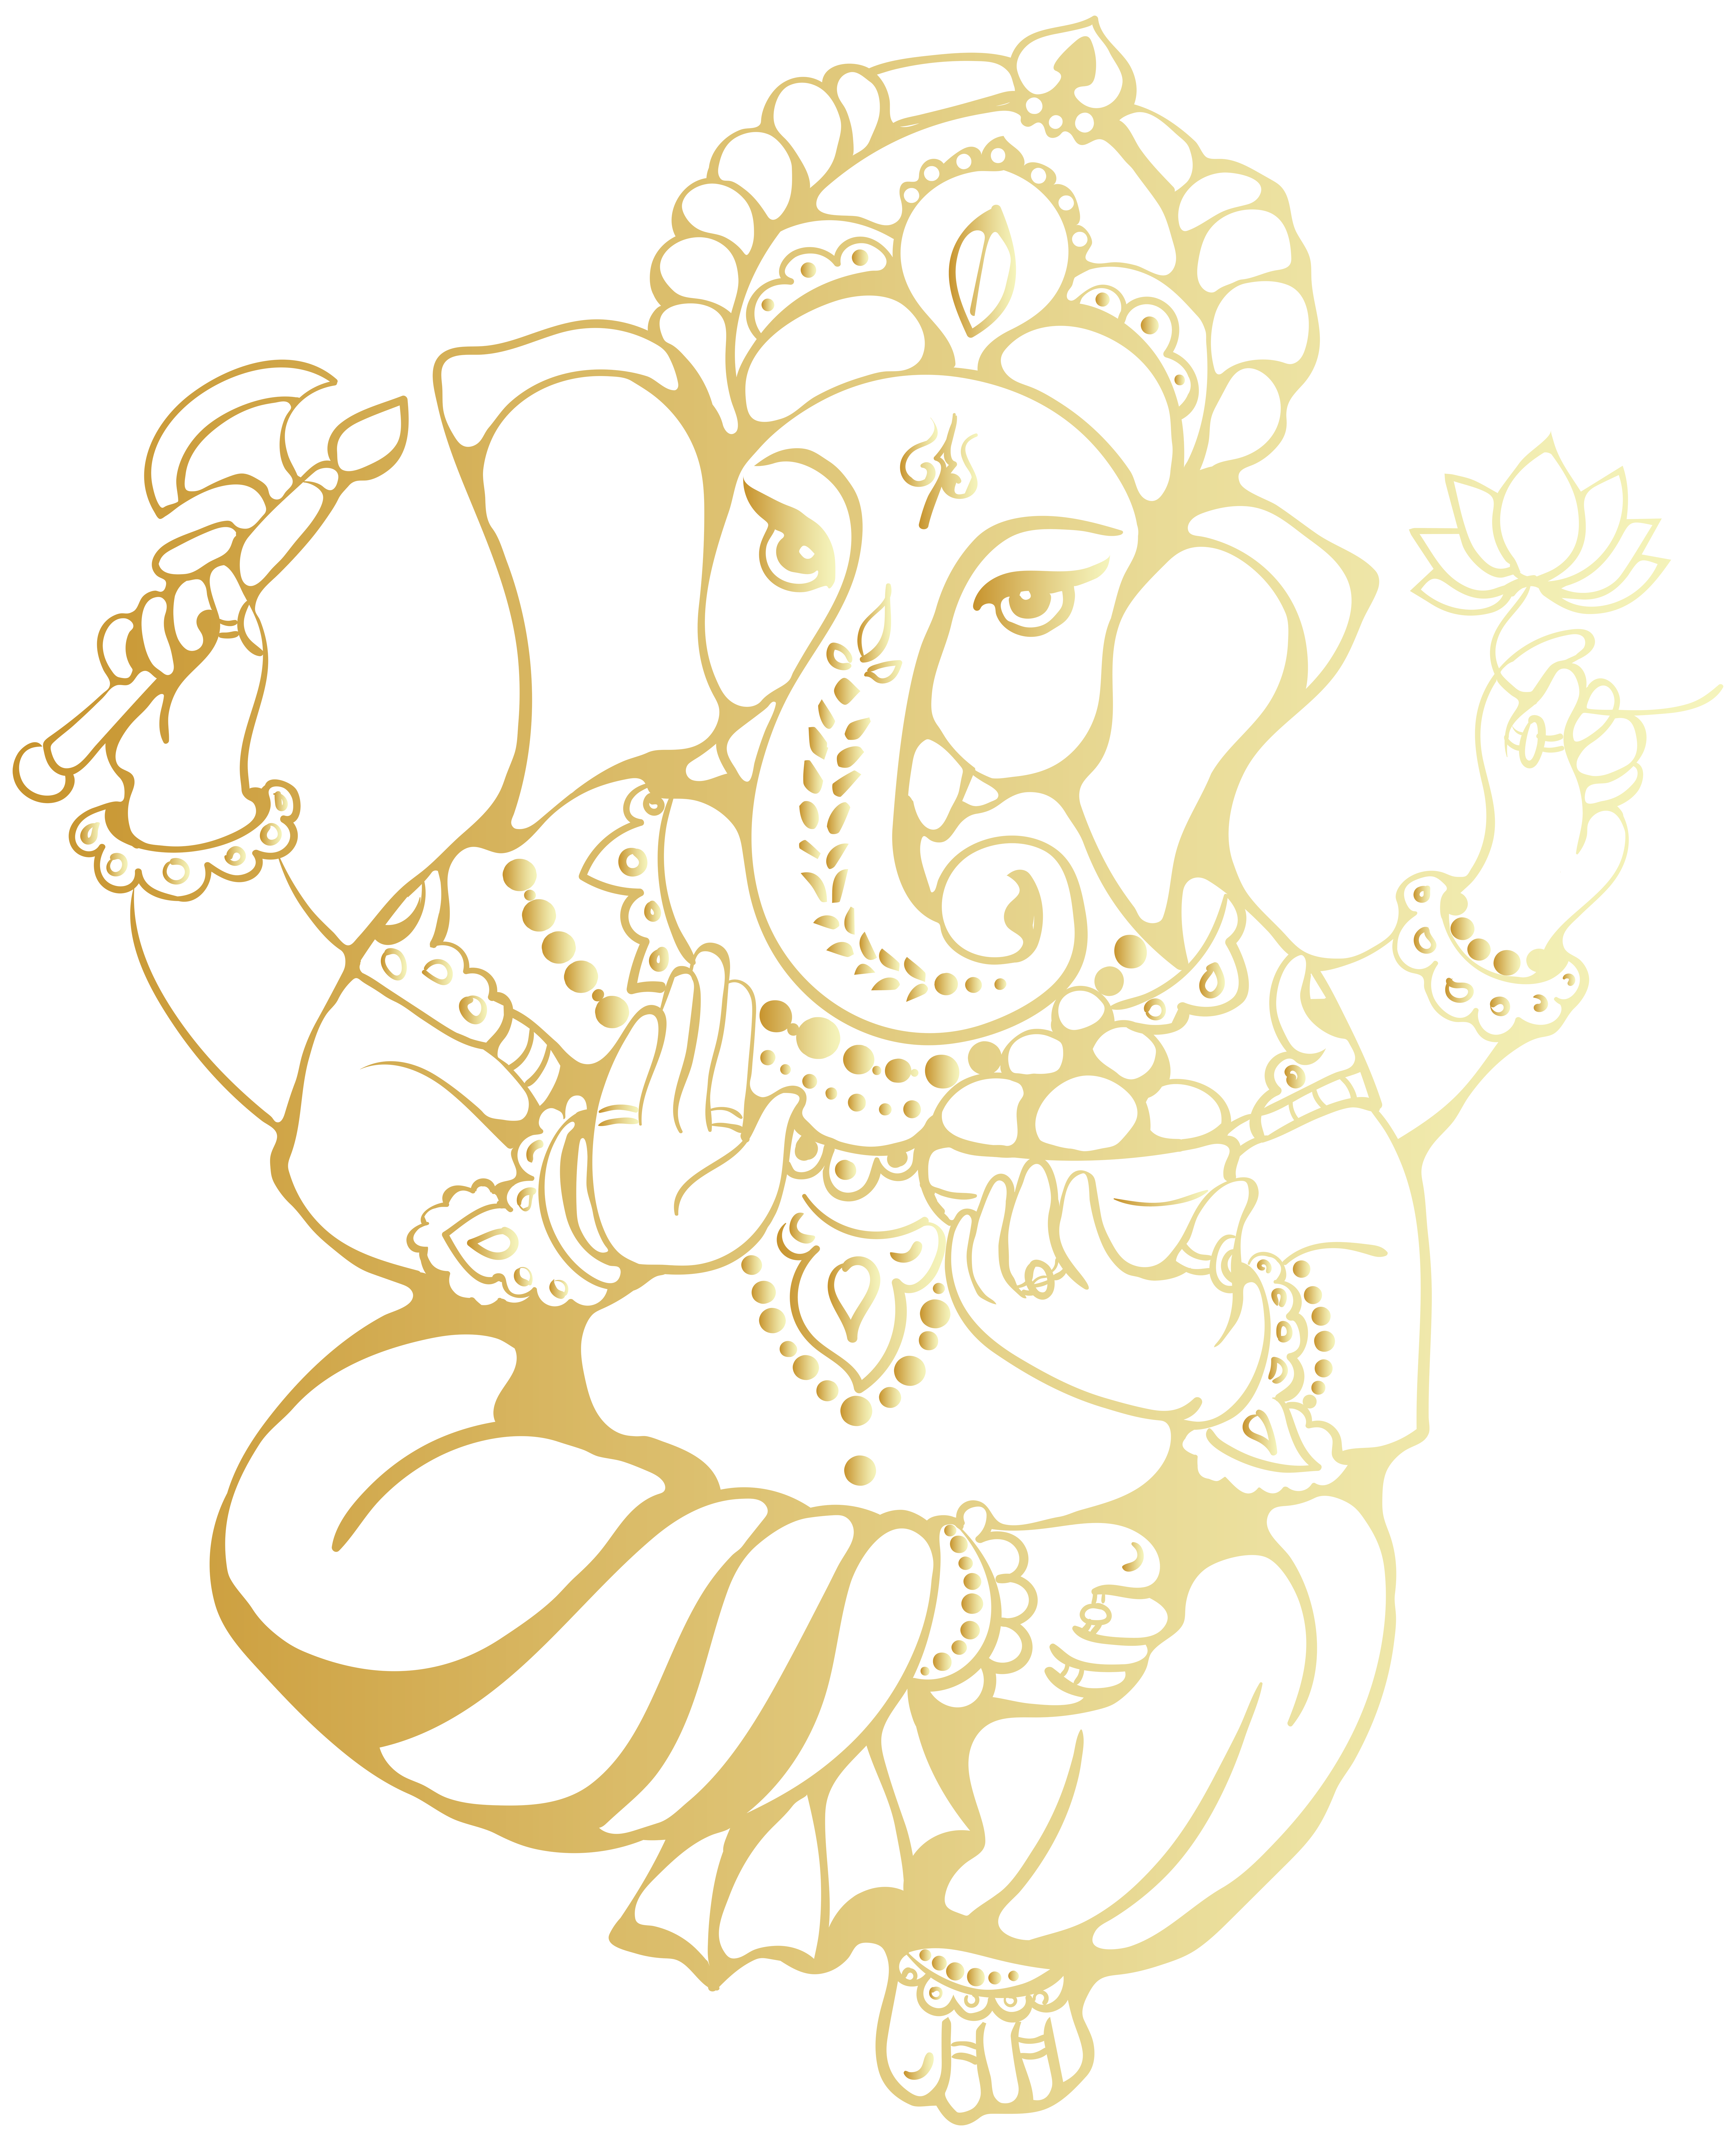 Marriage Clipart Ganesh Marriage Ganesh Transparent Free